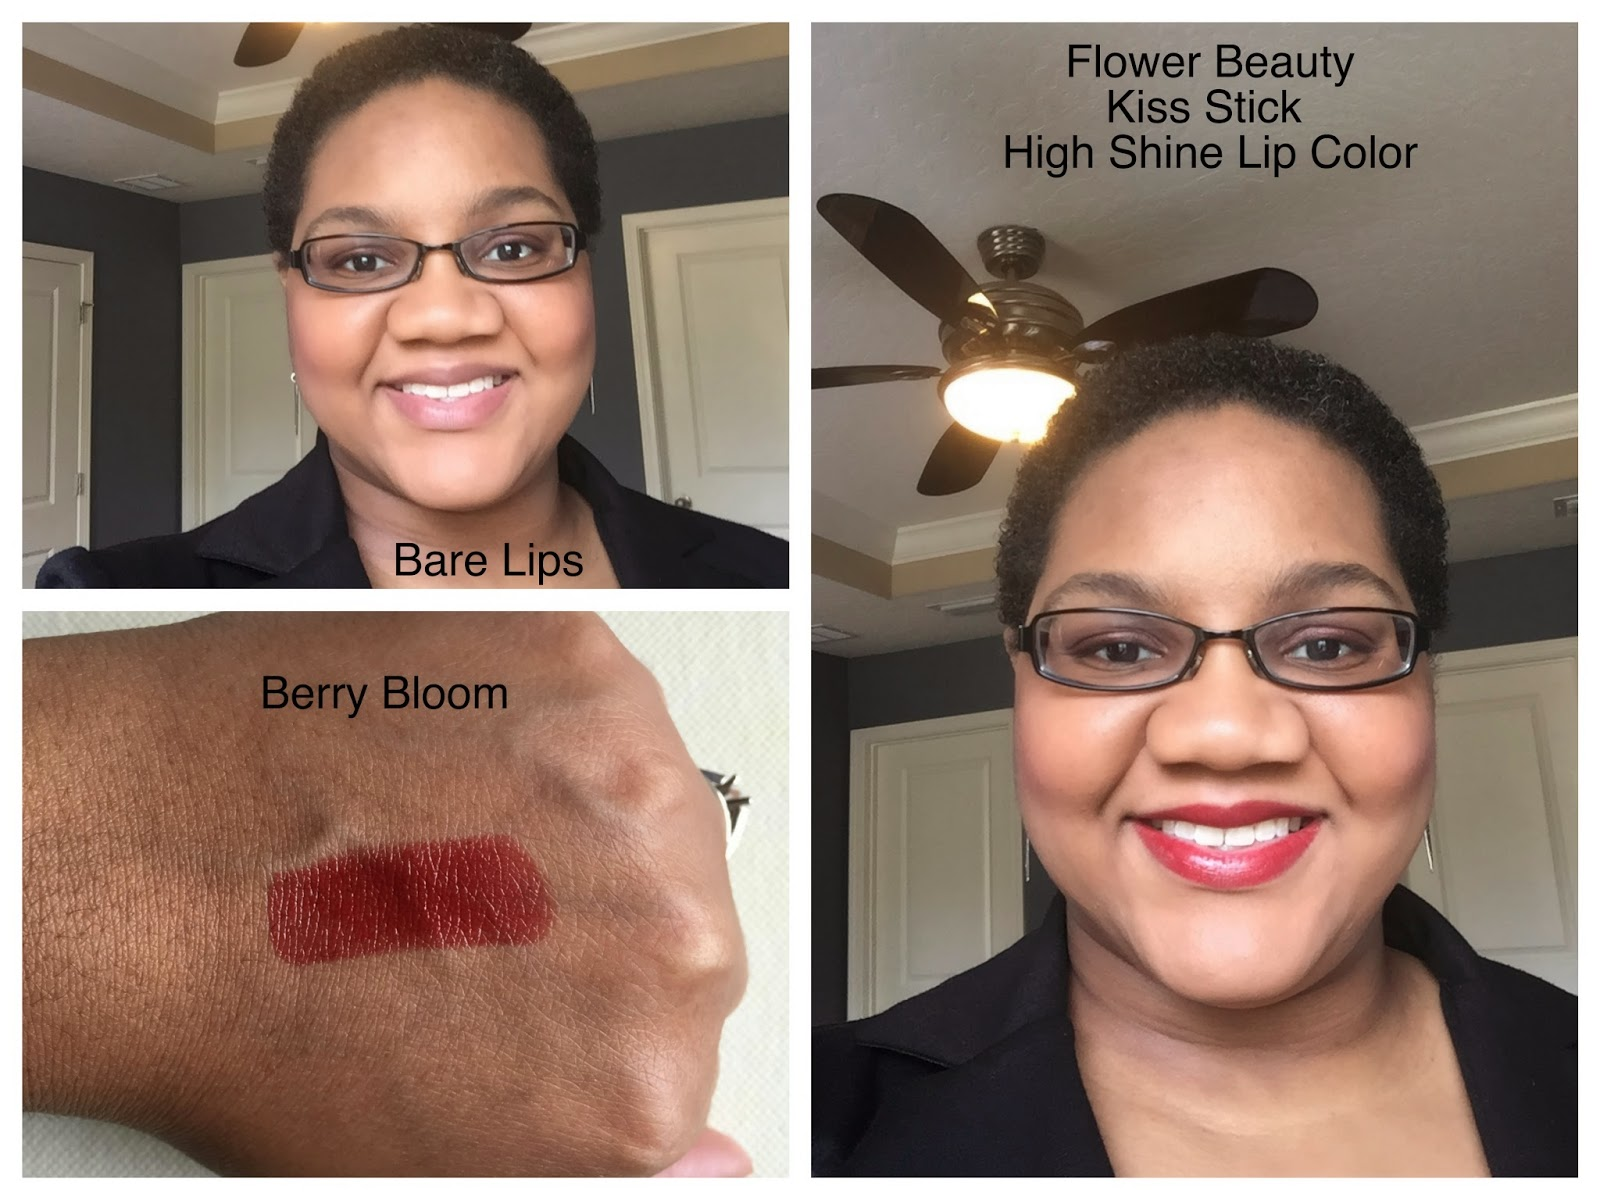 Sensitive beauty blog 2015 flower beauty is available exclusively at walmart and this lipstick retails for 698 on their website izmirmasajfo